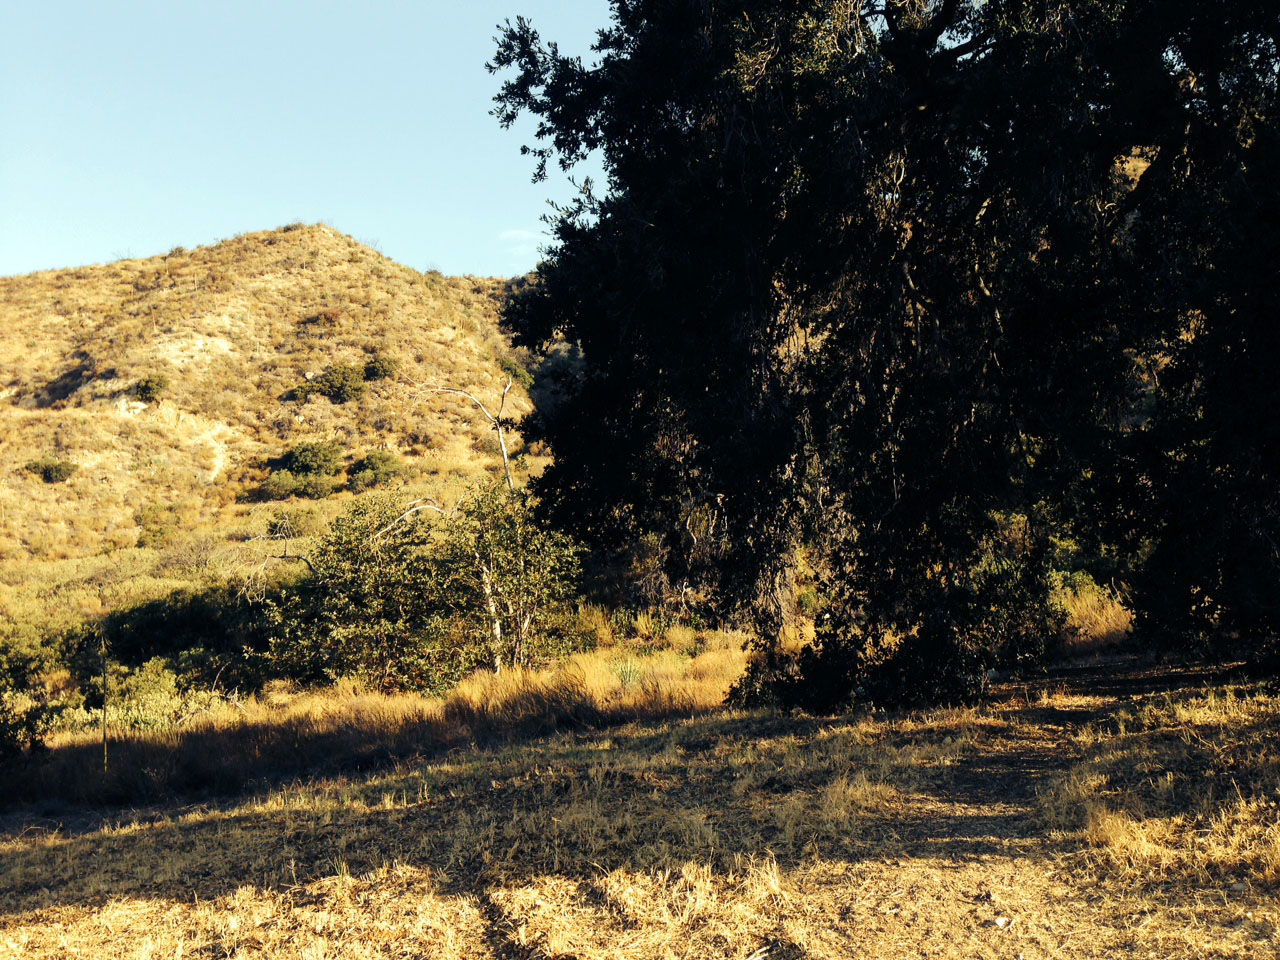 Big shady tree against the burnt foothills of the hiking trail